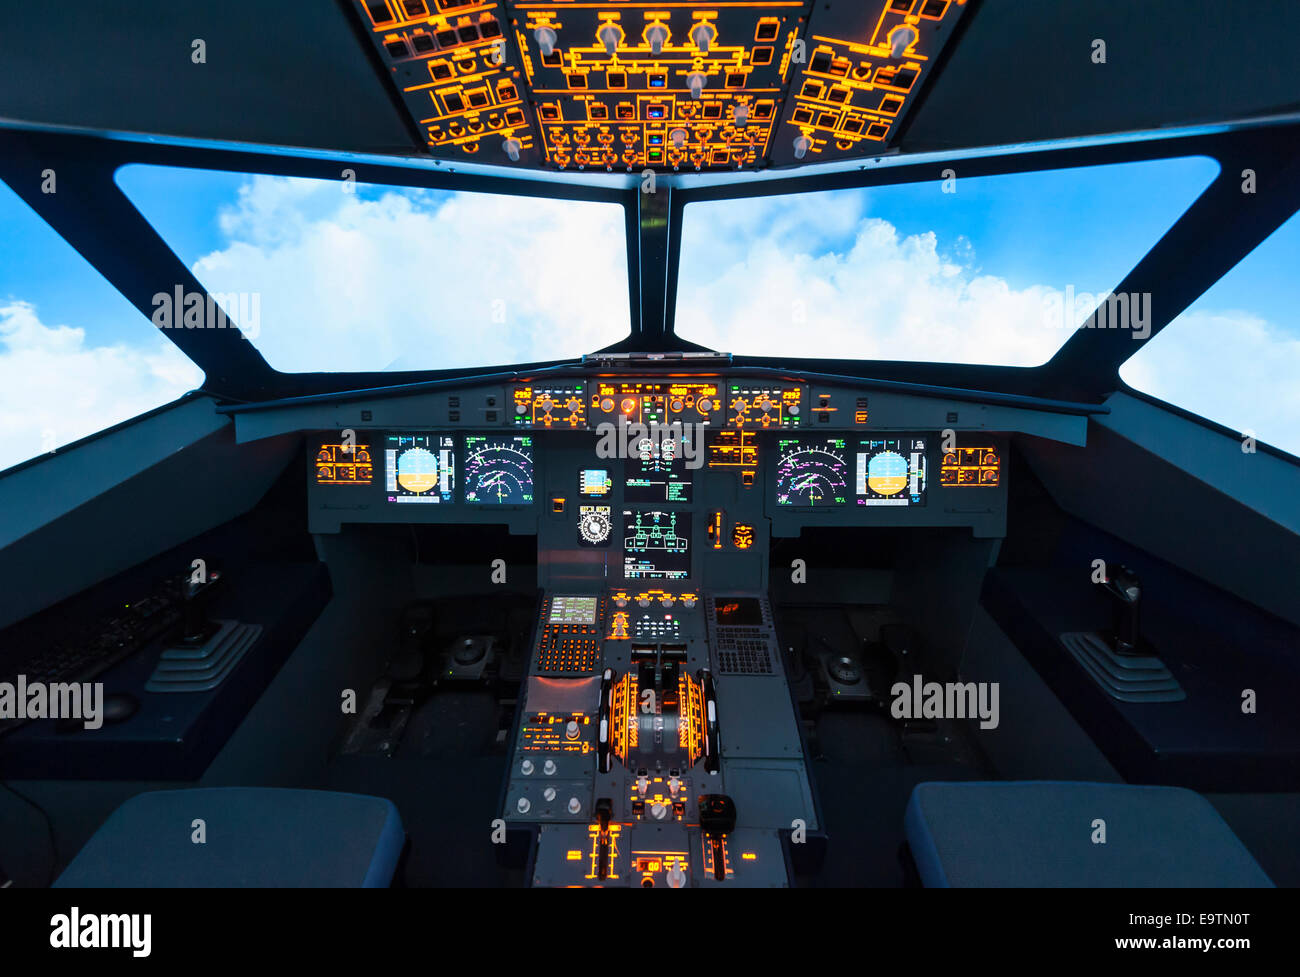 Instrument Panel Cockpit Airbus A320 Stock Photos & Instrument Panel